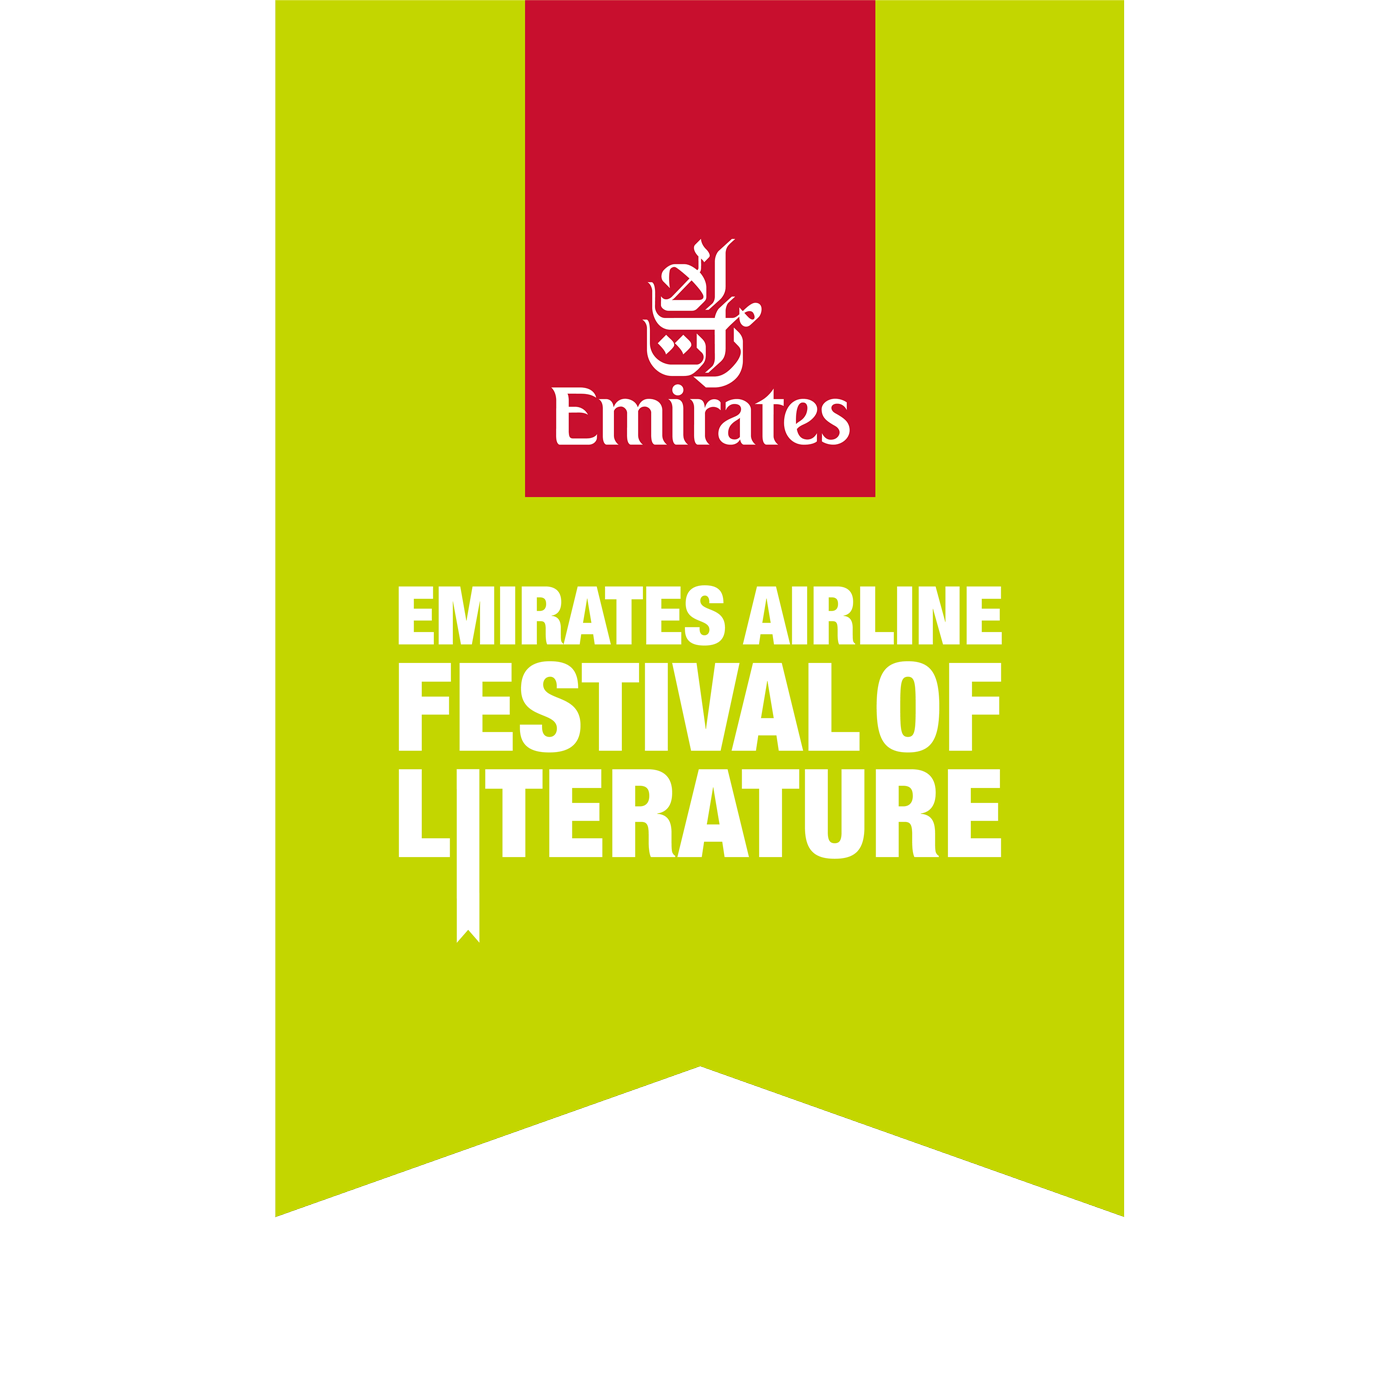 Show artwork for Best of the Emirates LitFest